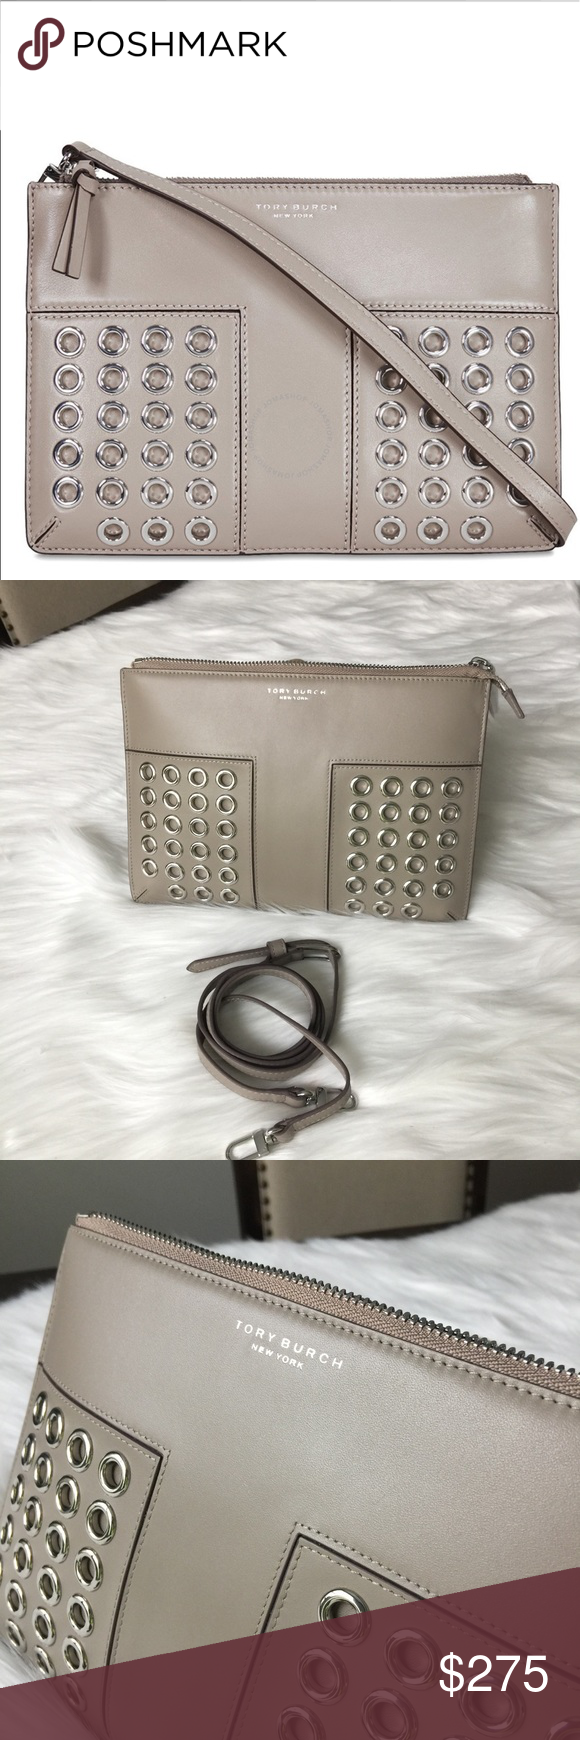 ded0f95a3ecf Tory Burch Block-T Grommet Mini Crossbody Brand new with tag and dust bag.  Still in original packaging. 100% authentic. French gray.